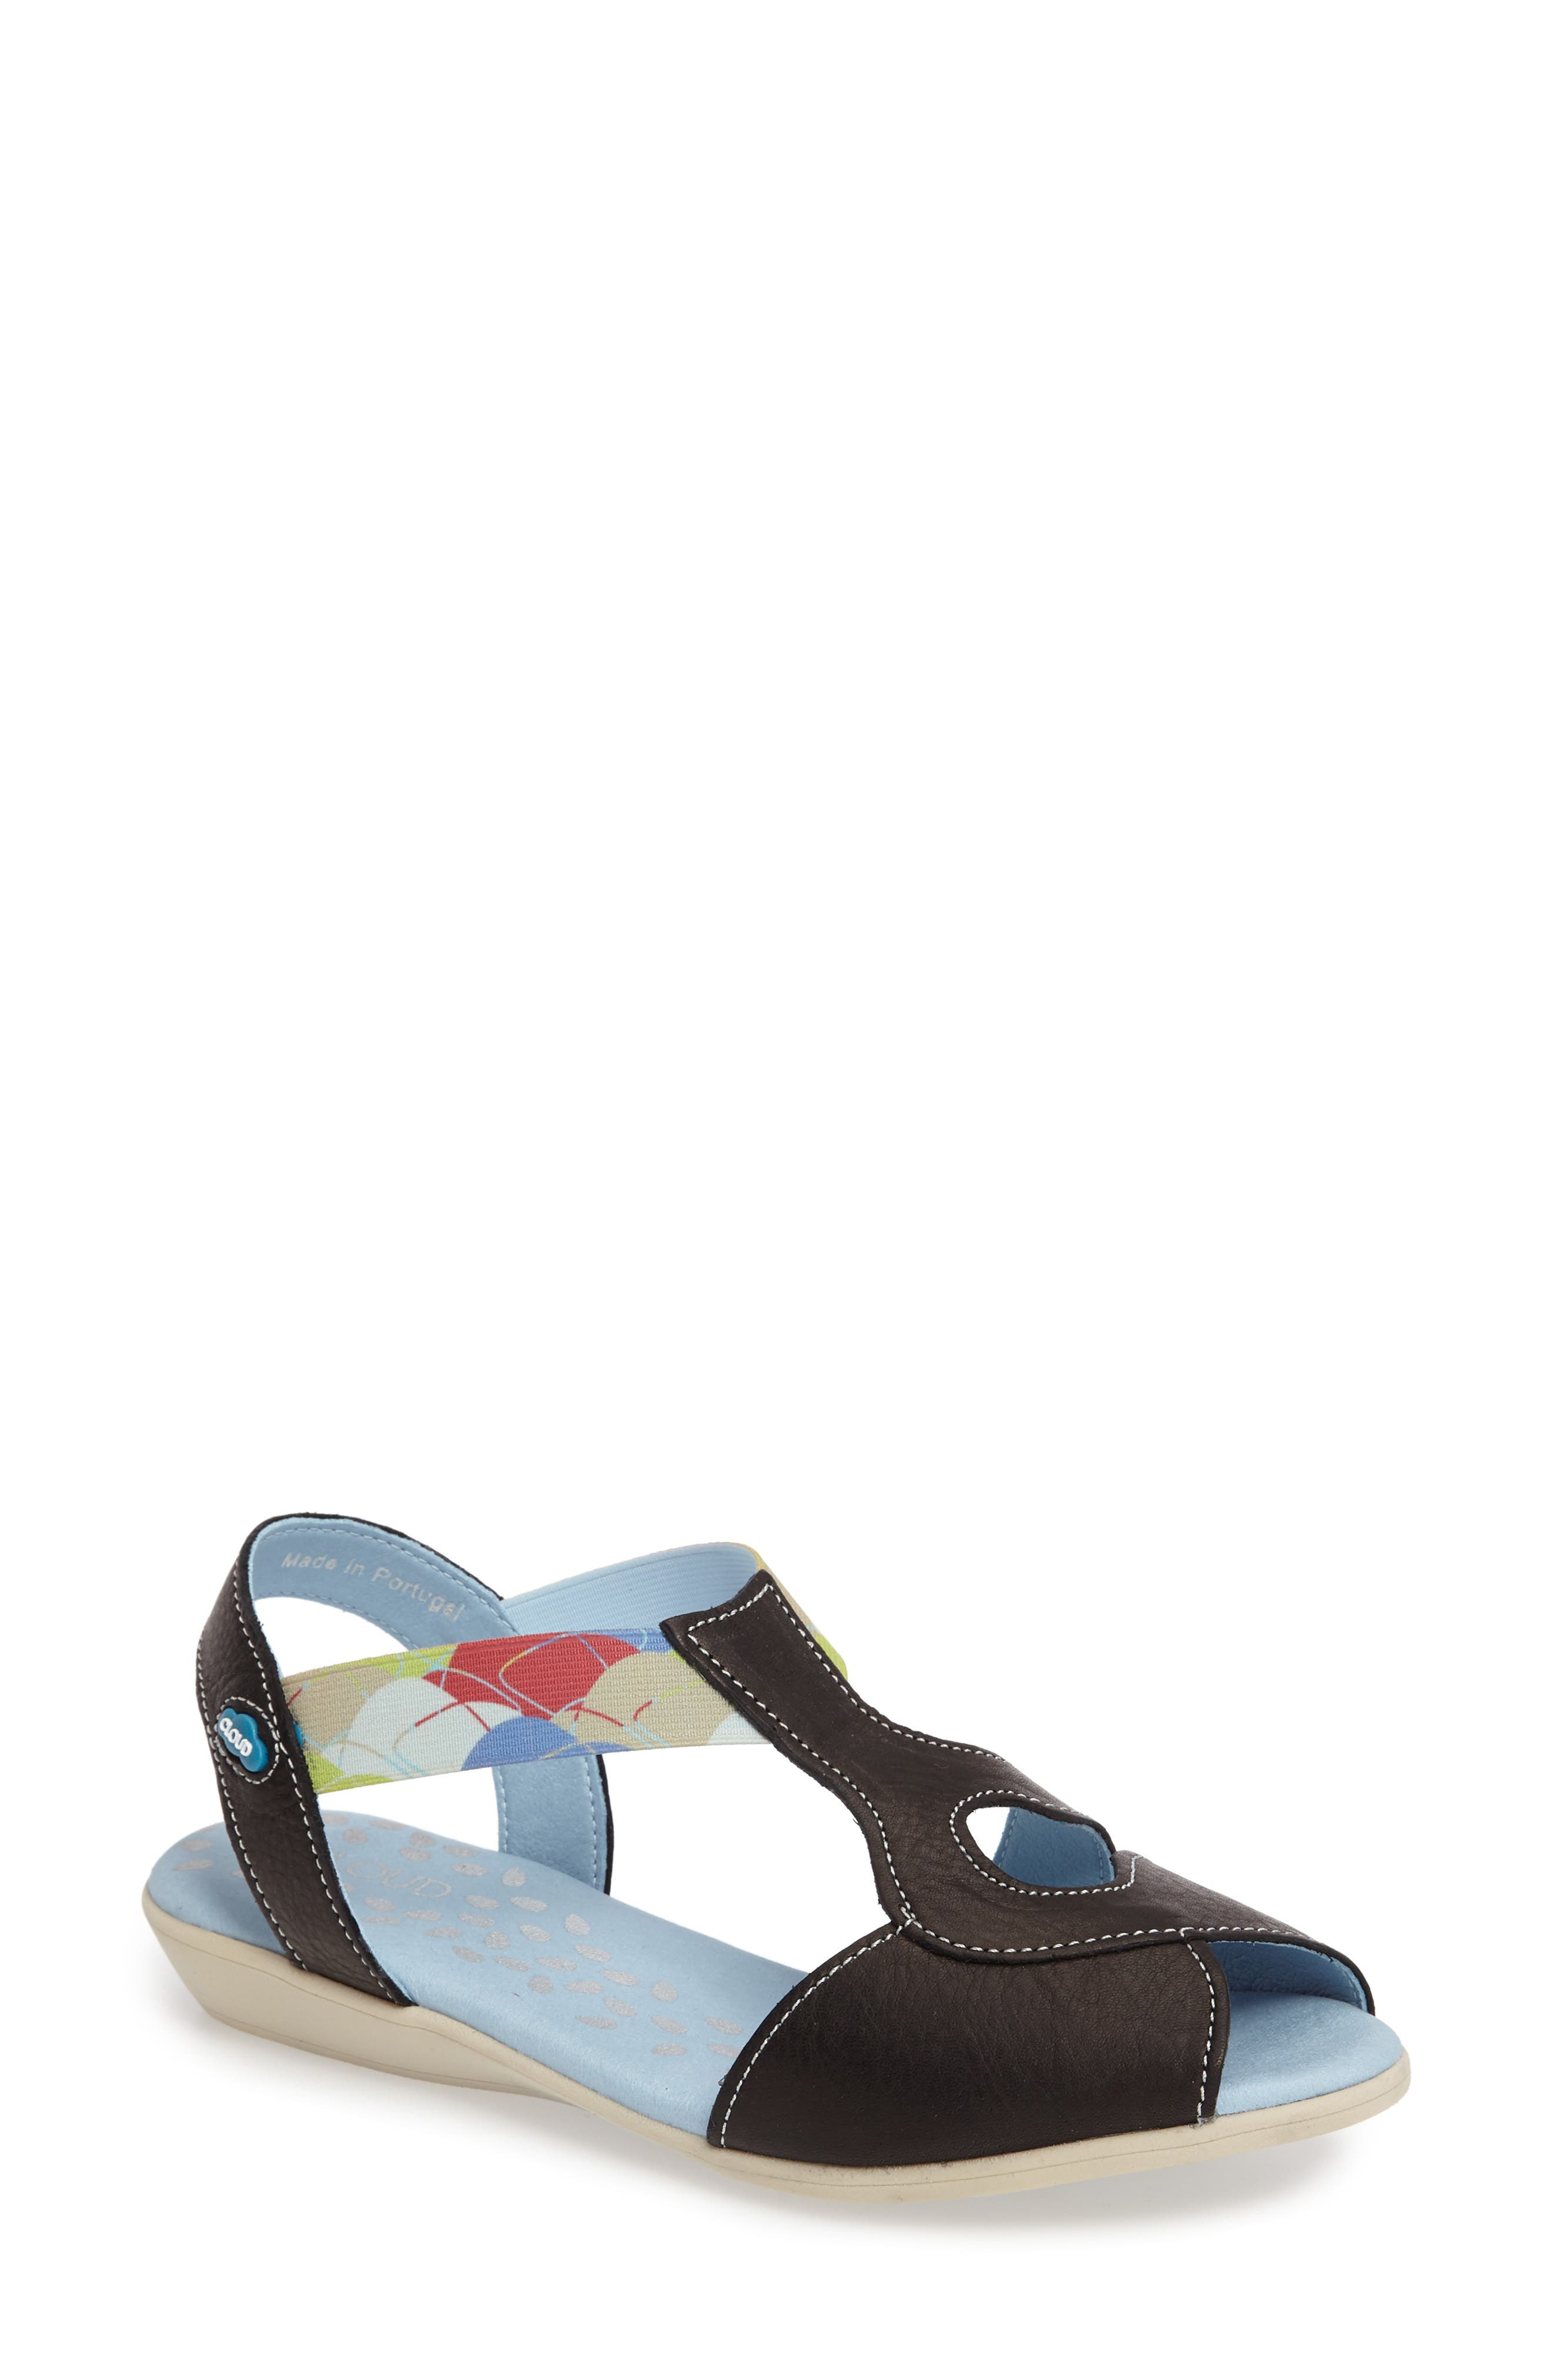 Chaya Sandal,                         Main,                         color, BLACK LEATHER